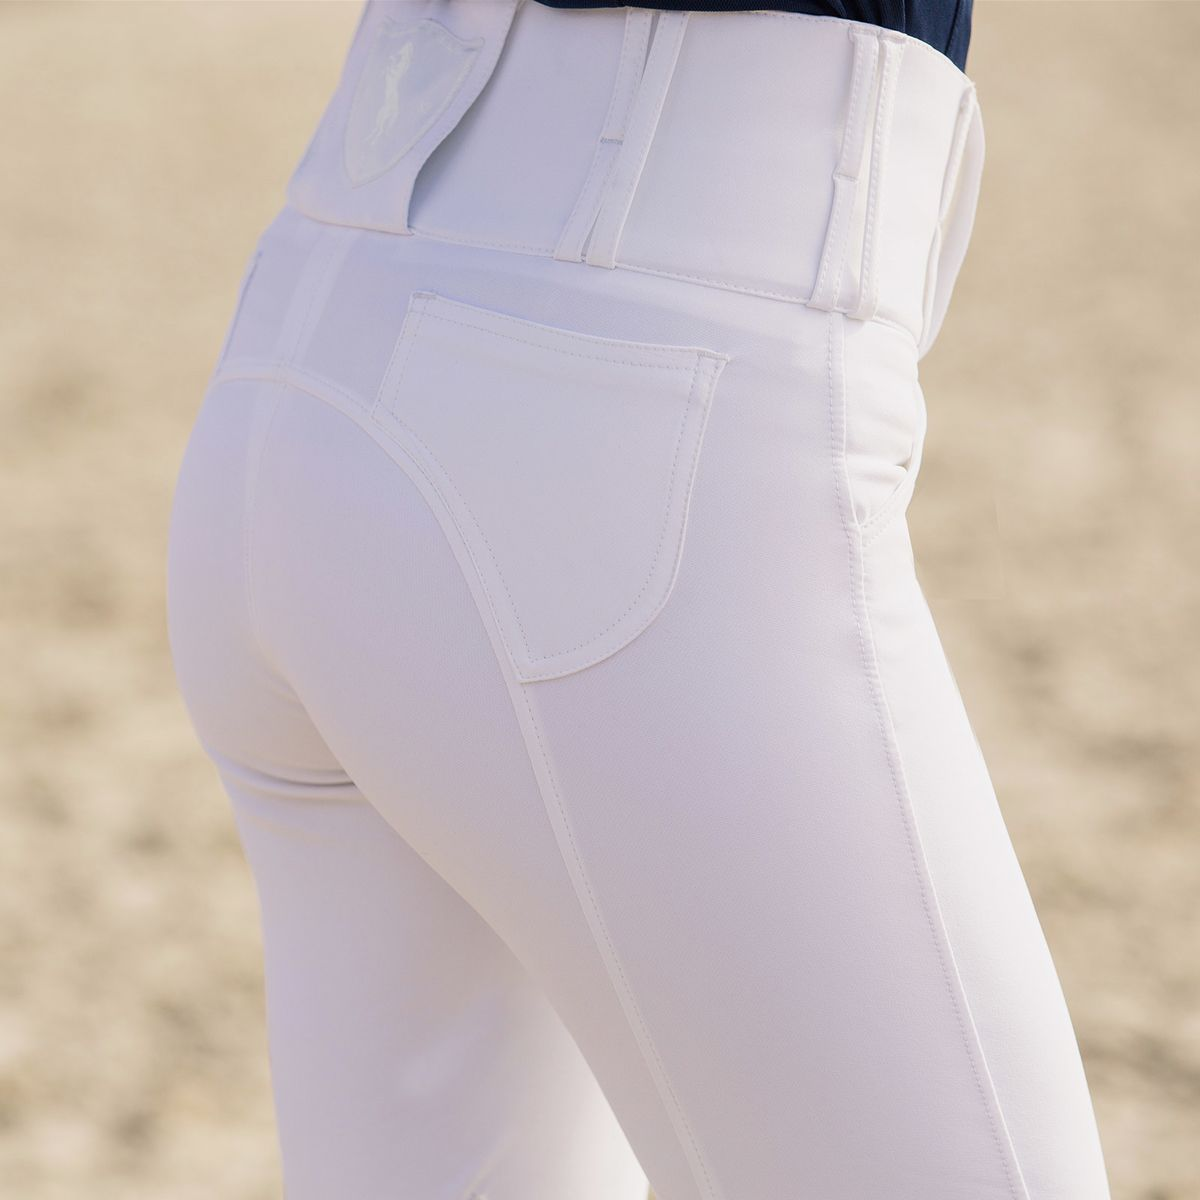 Horze-Desiree-Women-039-s-Knee-Patch-Riding-Breeches-with-High-Waist-and-Bi-Stretch thumbnail 32